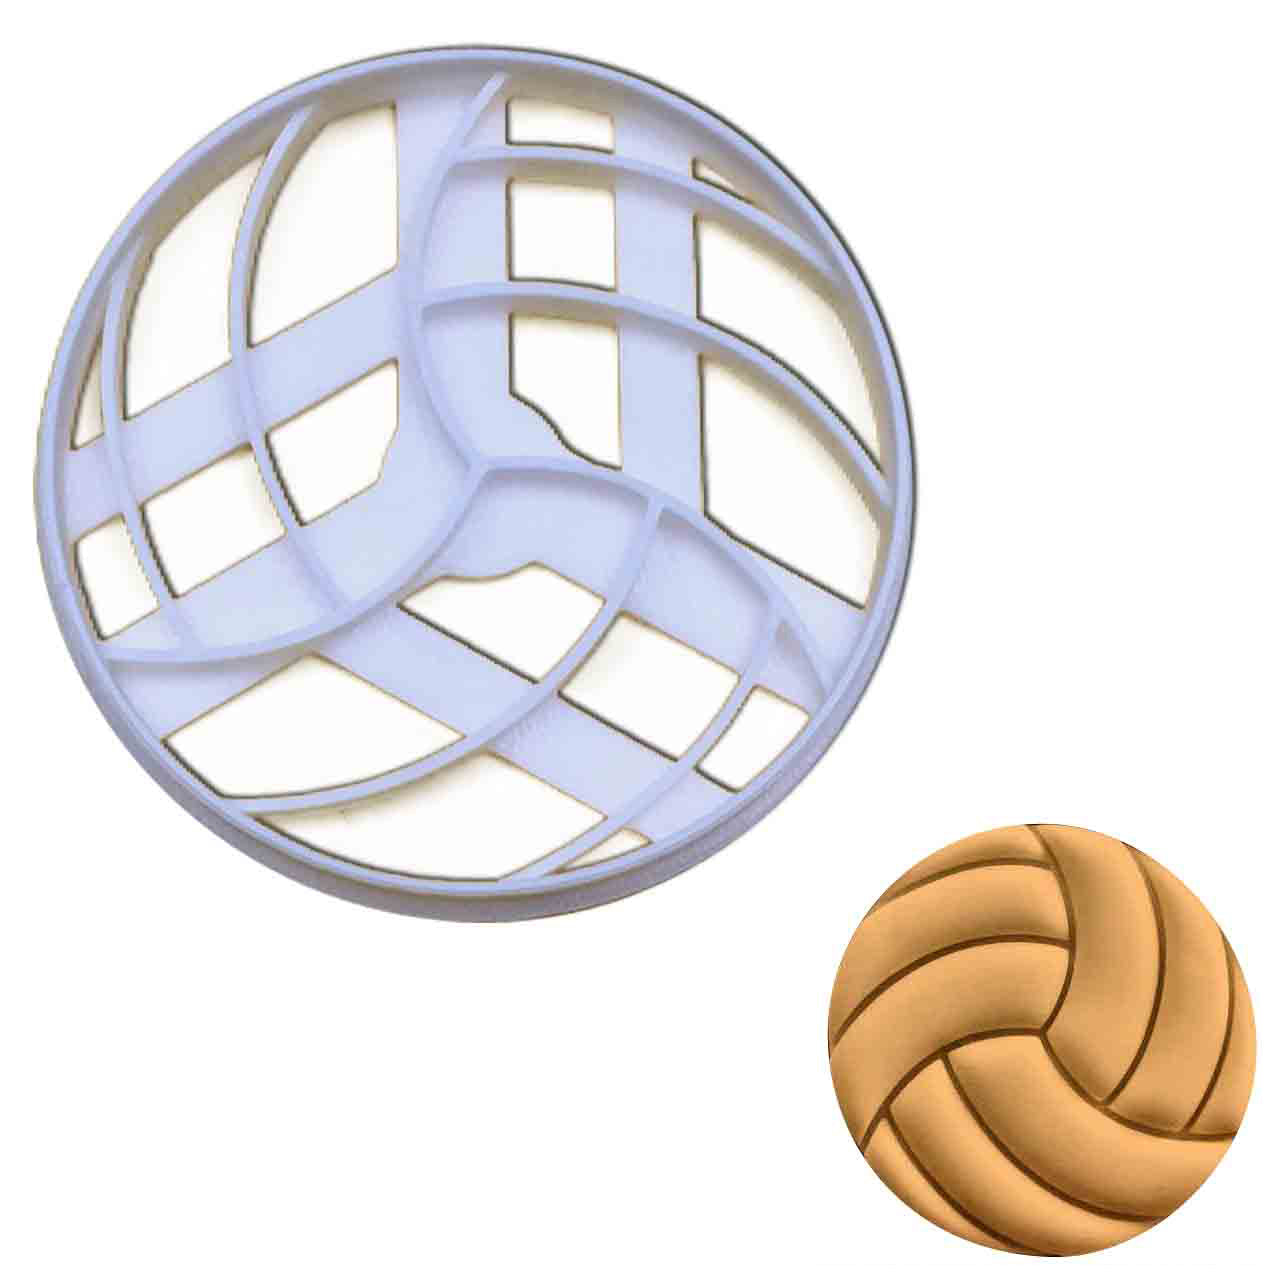 volleyball cookie cutter pressed on fondant